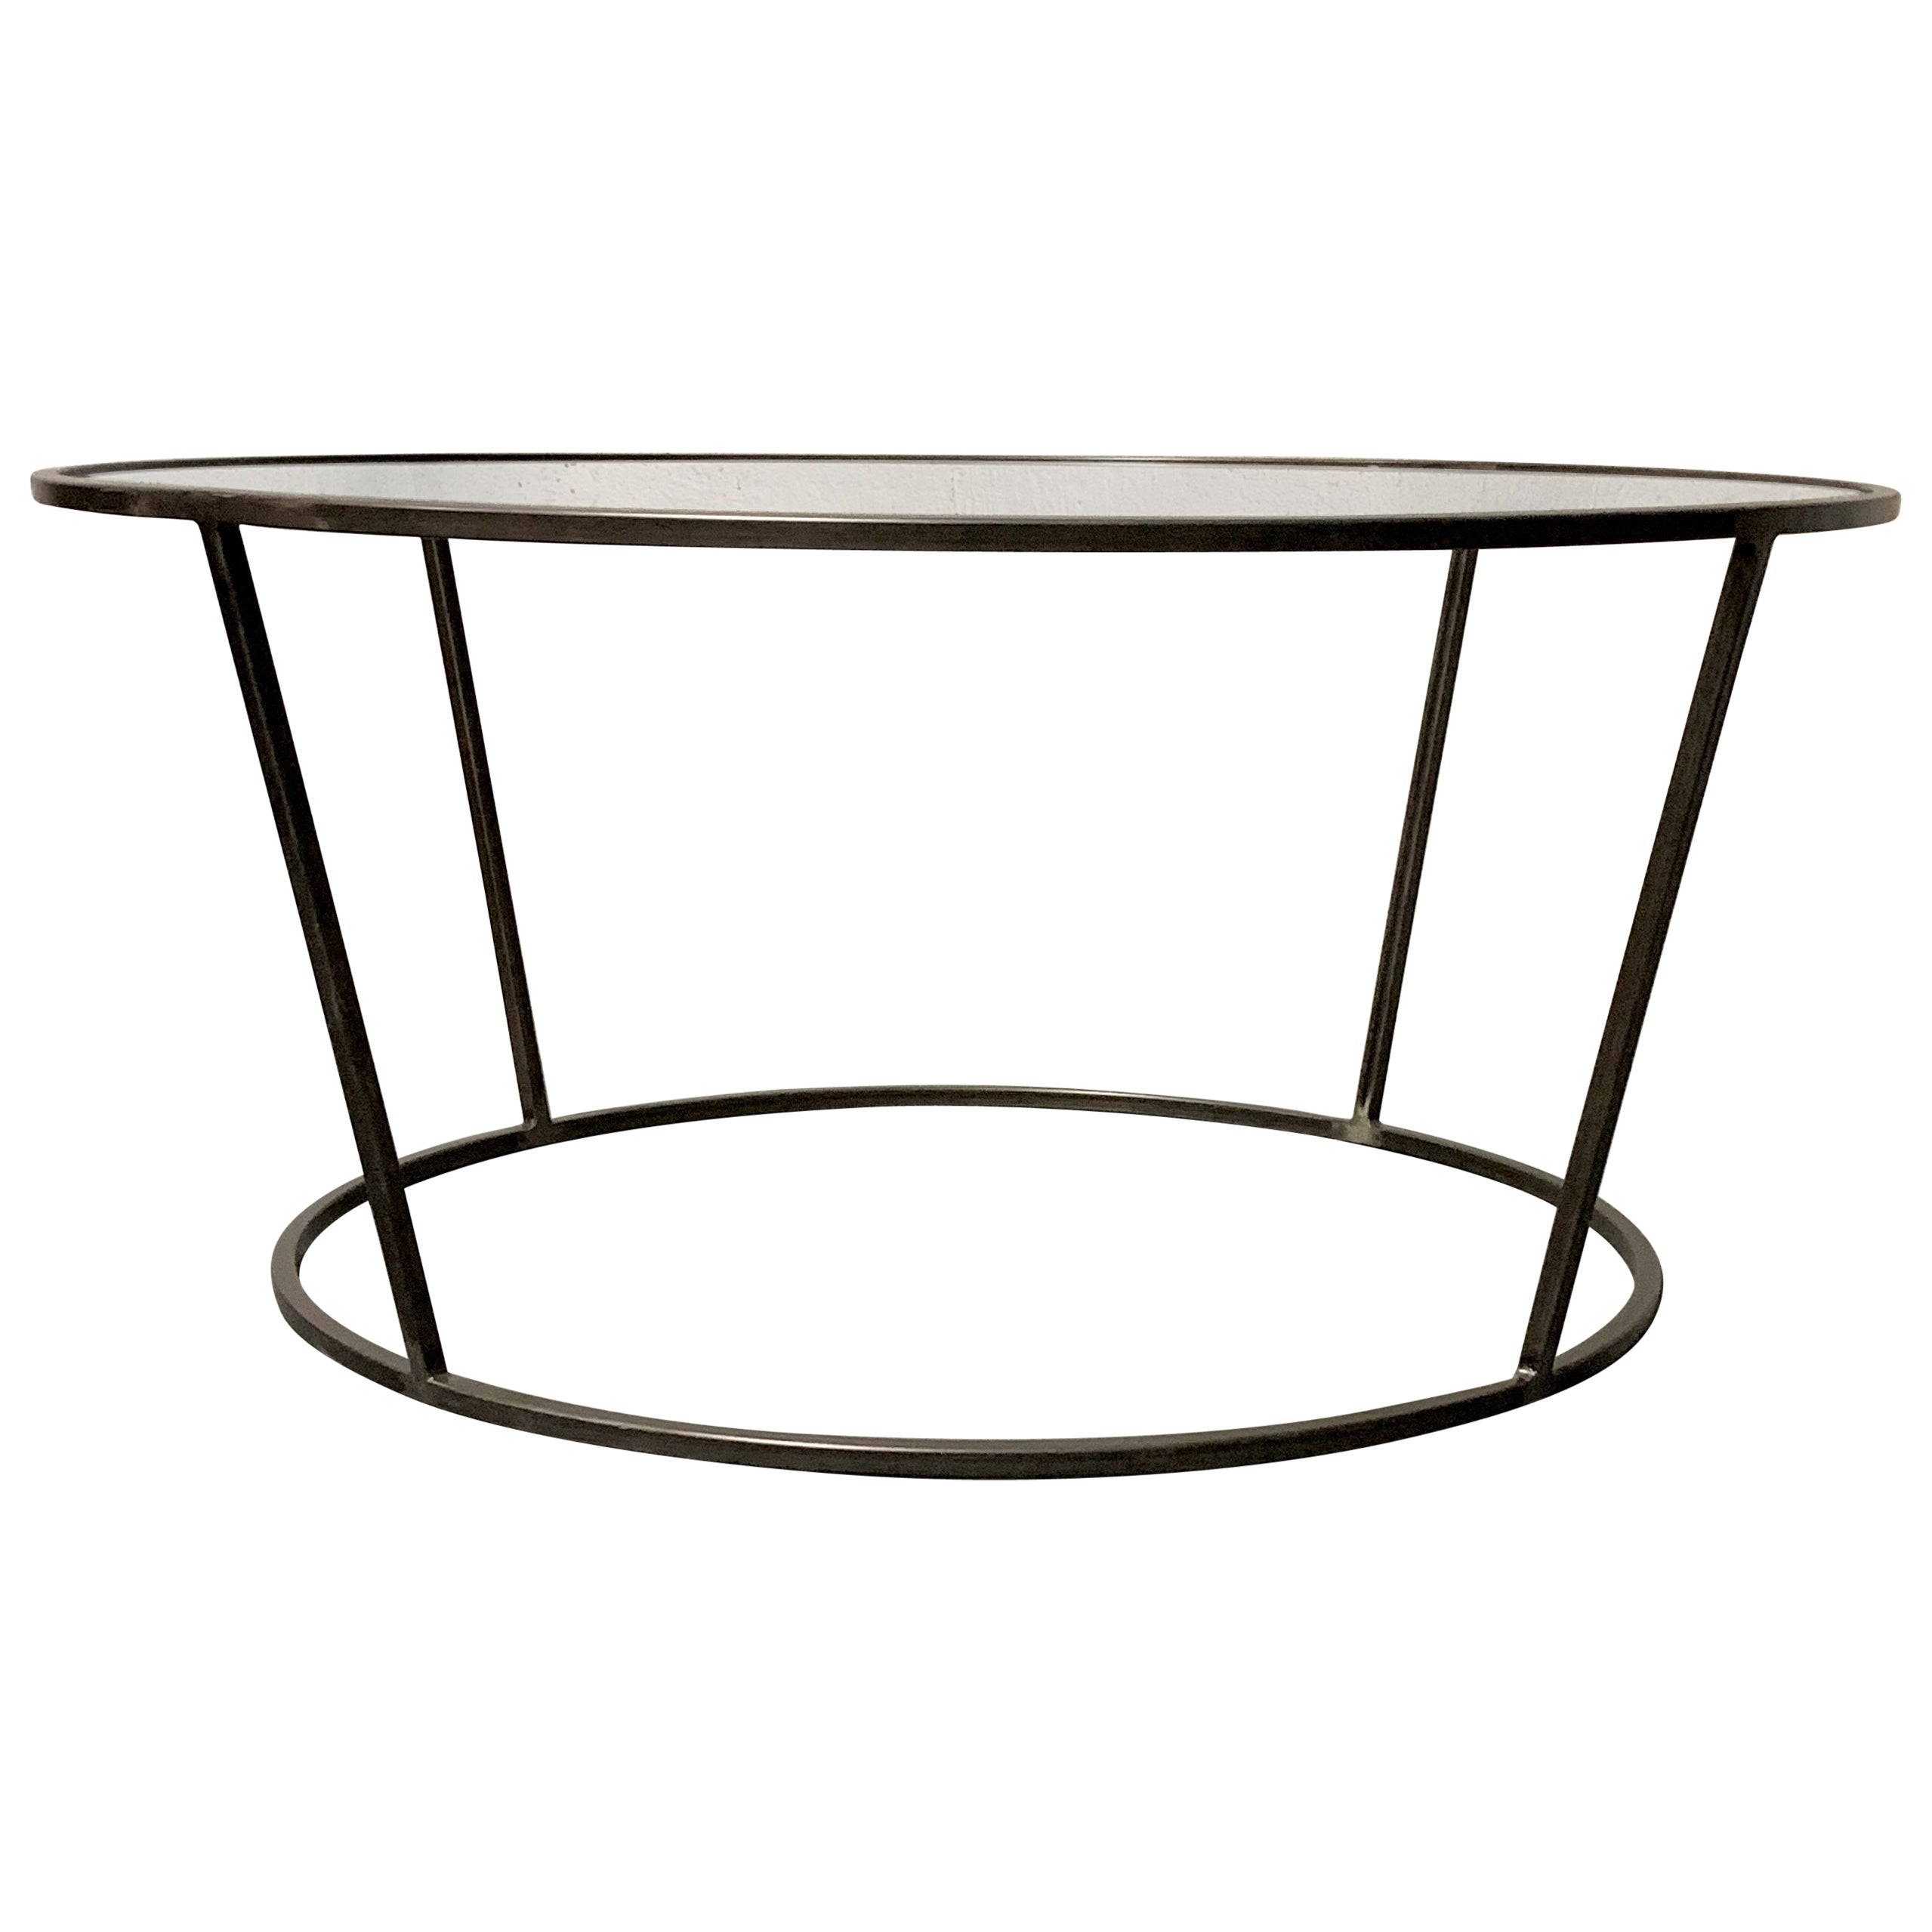 New Round Coffee Table with Metal Structure and Glass Top